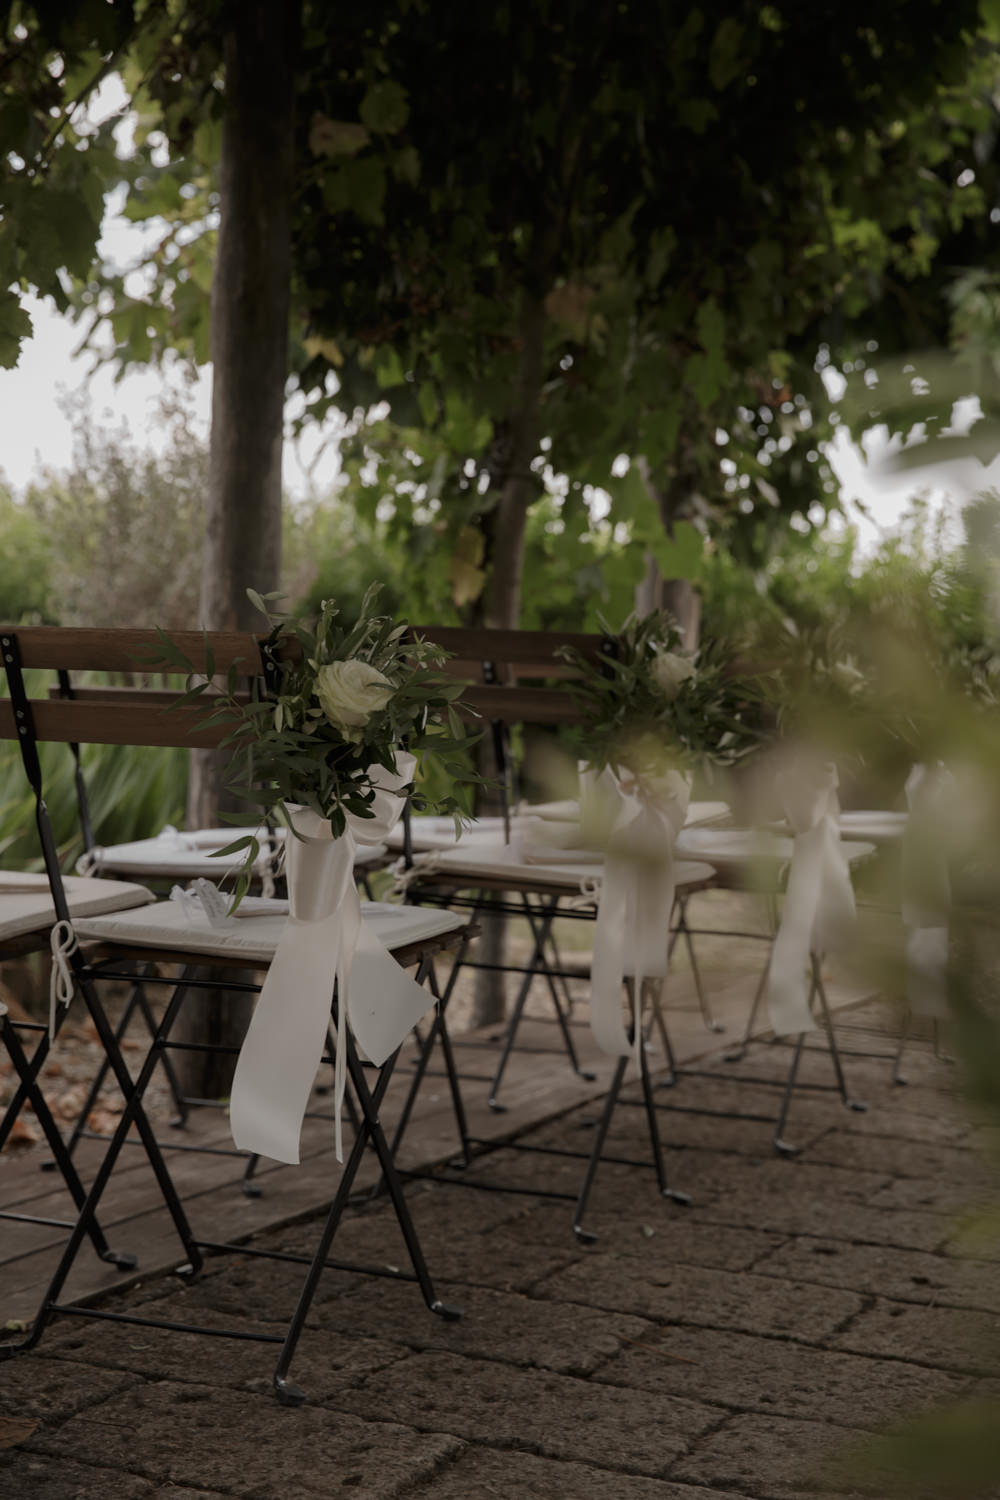 Pew End Chair Flowers Ceremony Aisle Tuscany Destination Wedding ZONZO